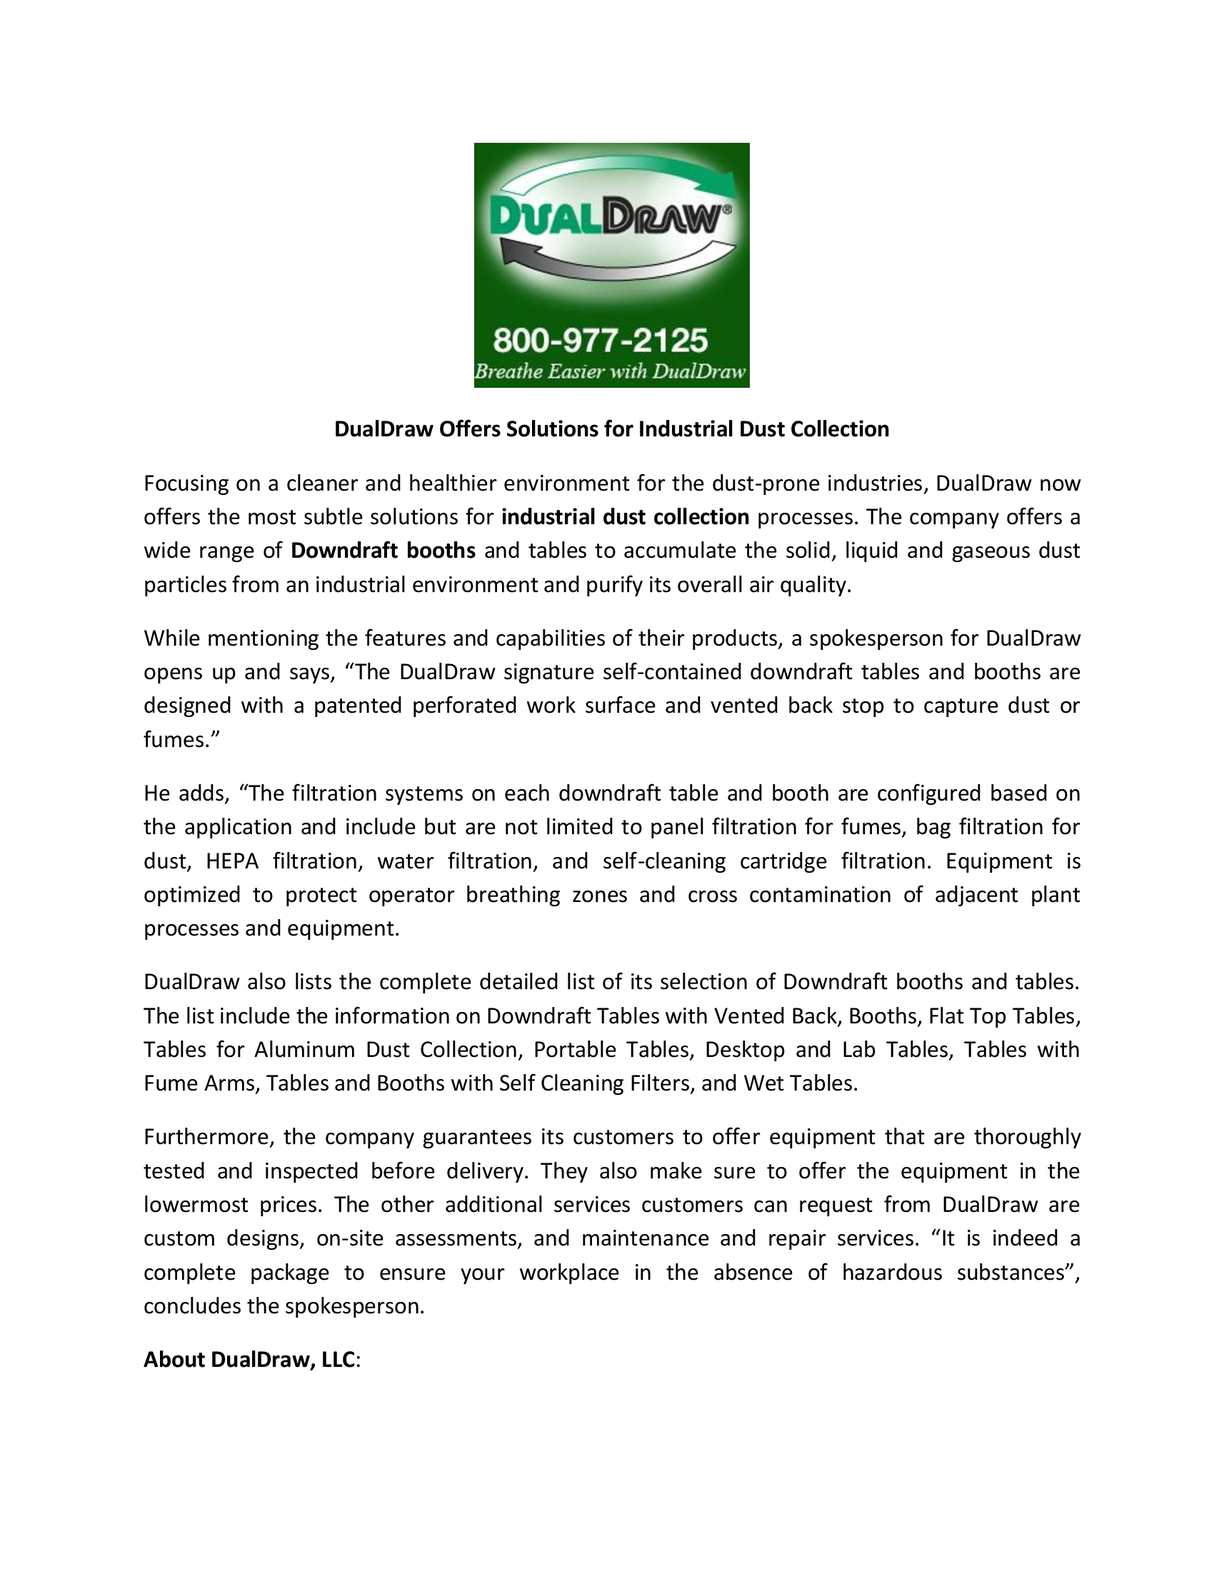 Calaméo - DualDraw Offers Solutions for Industrial Dust